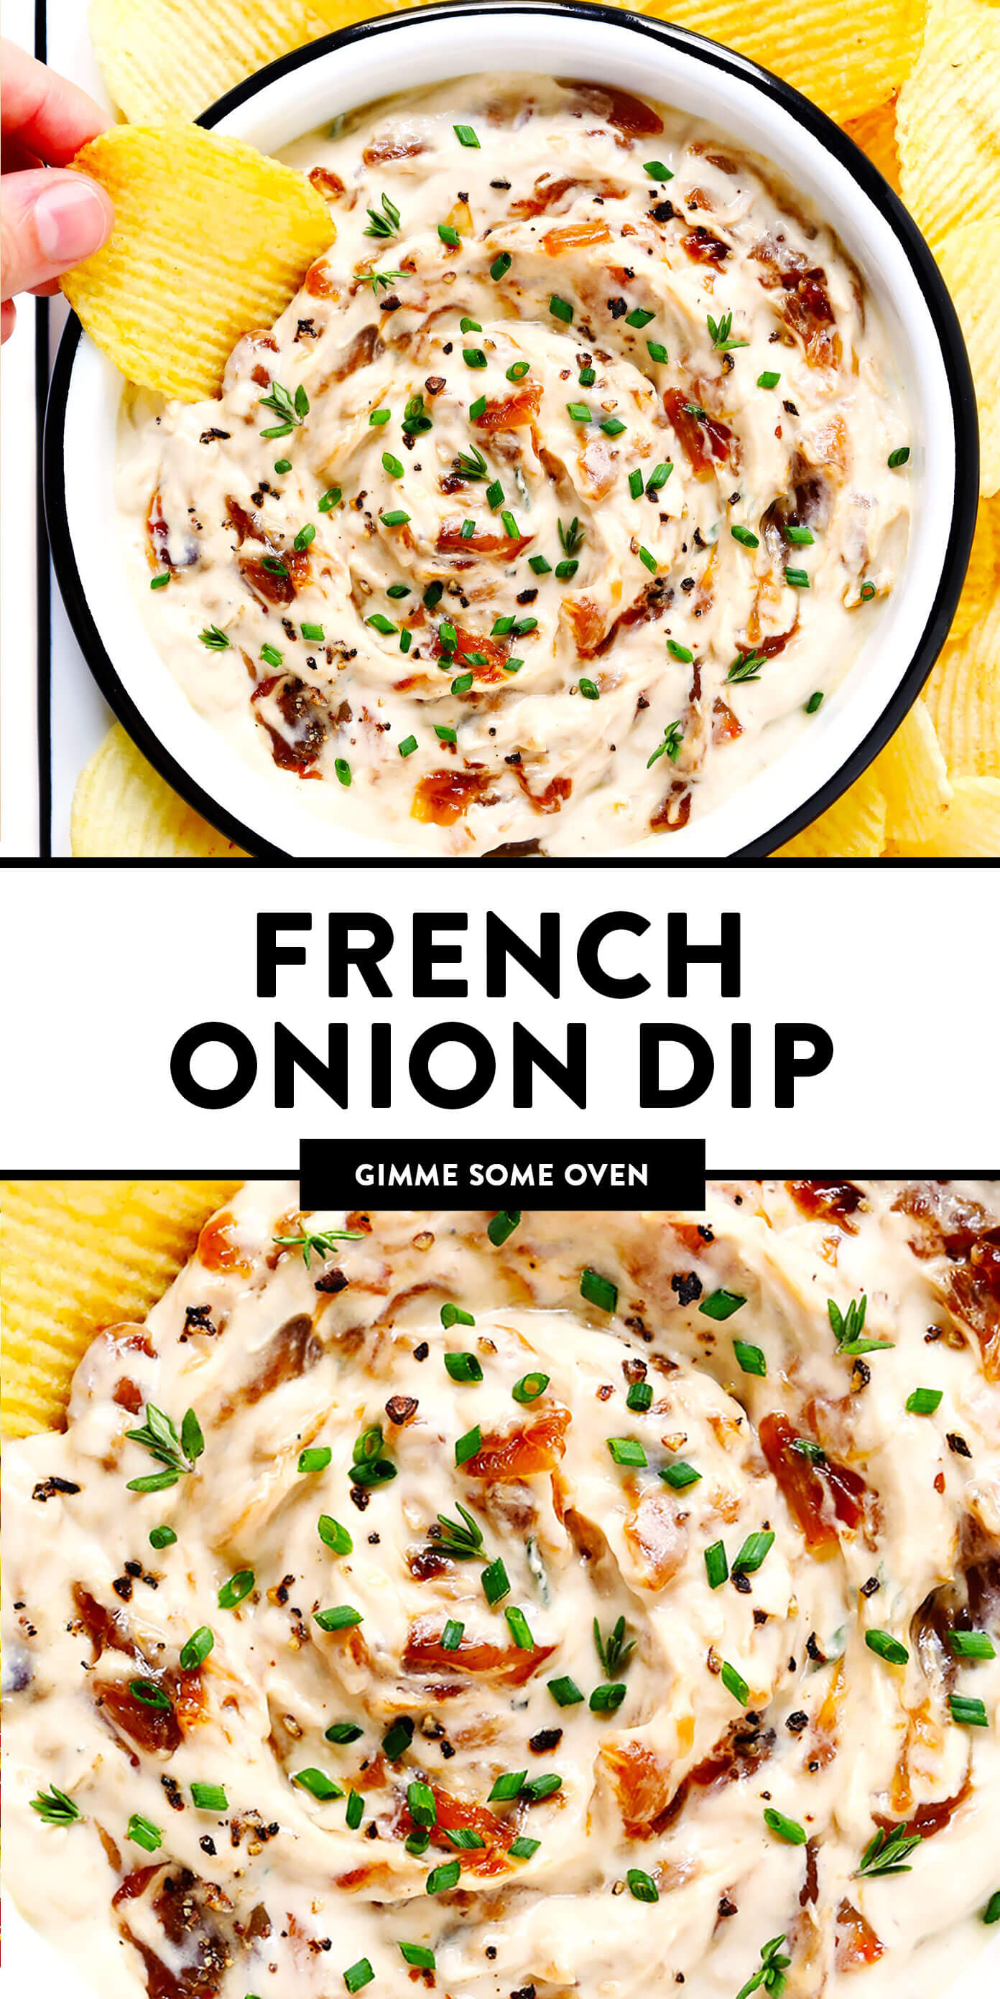 Photo of French Onion Dip Recipe | Gimme Some Oven